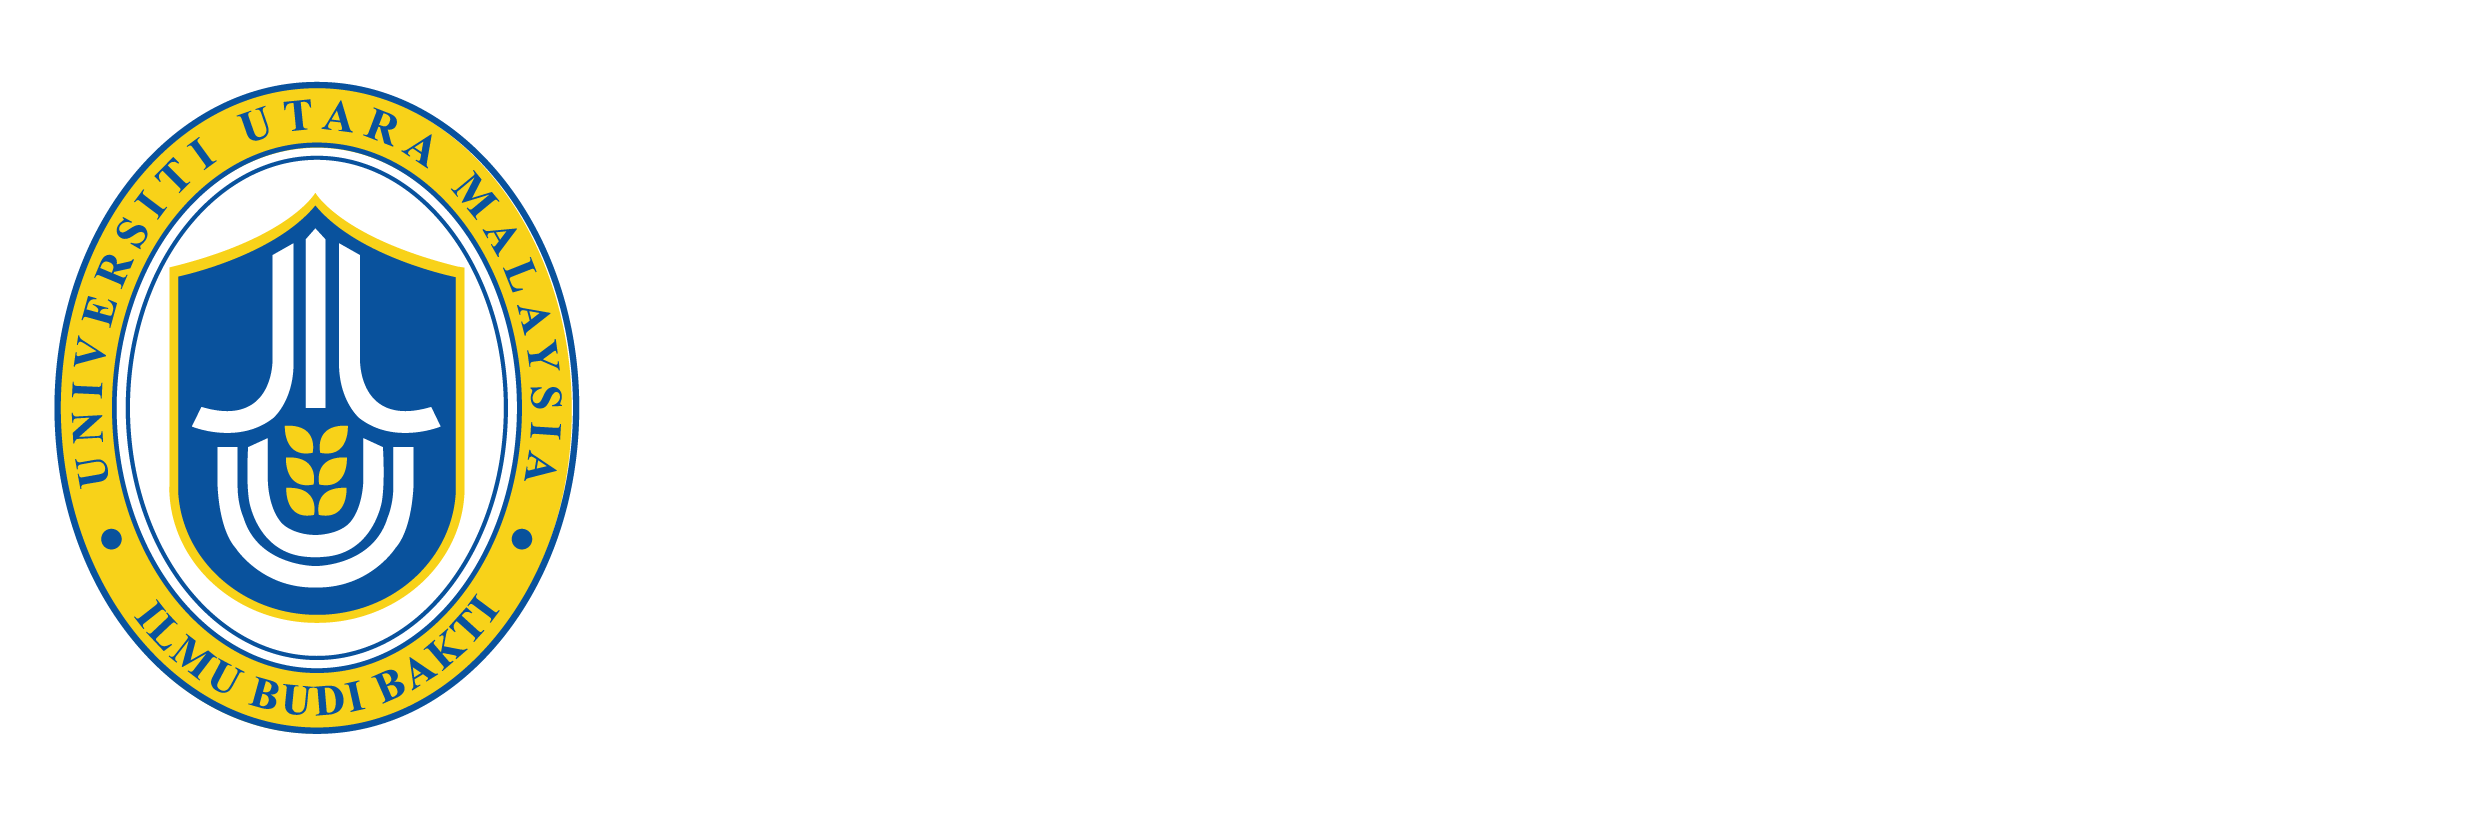 School of Multimedia Technology & Communication (SMMTC)